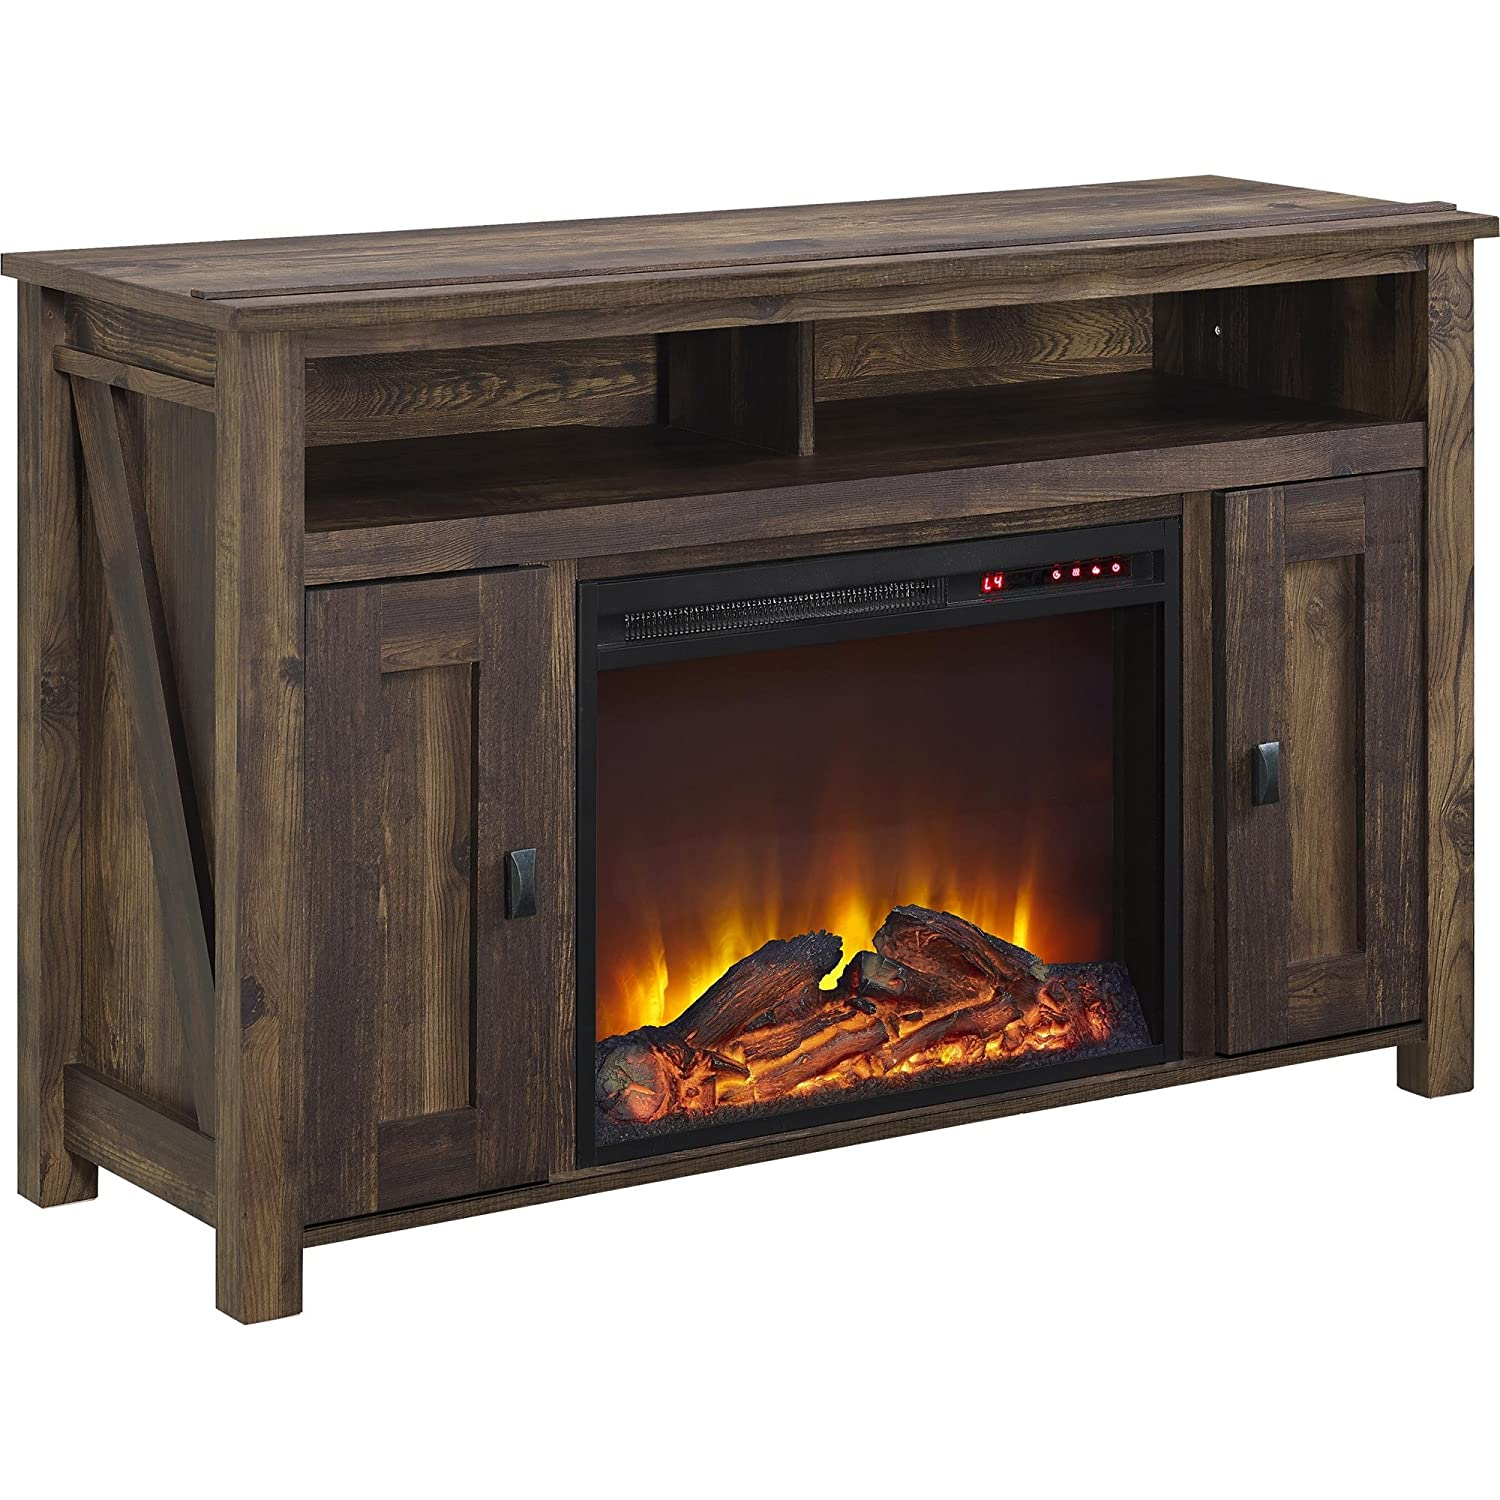 Ameriwood Home Farmington Fireplace TV Stand Review